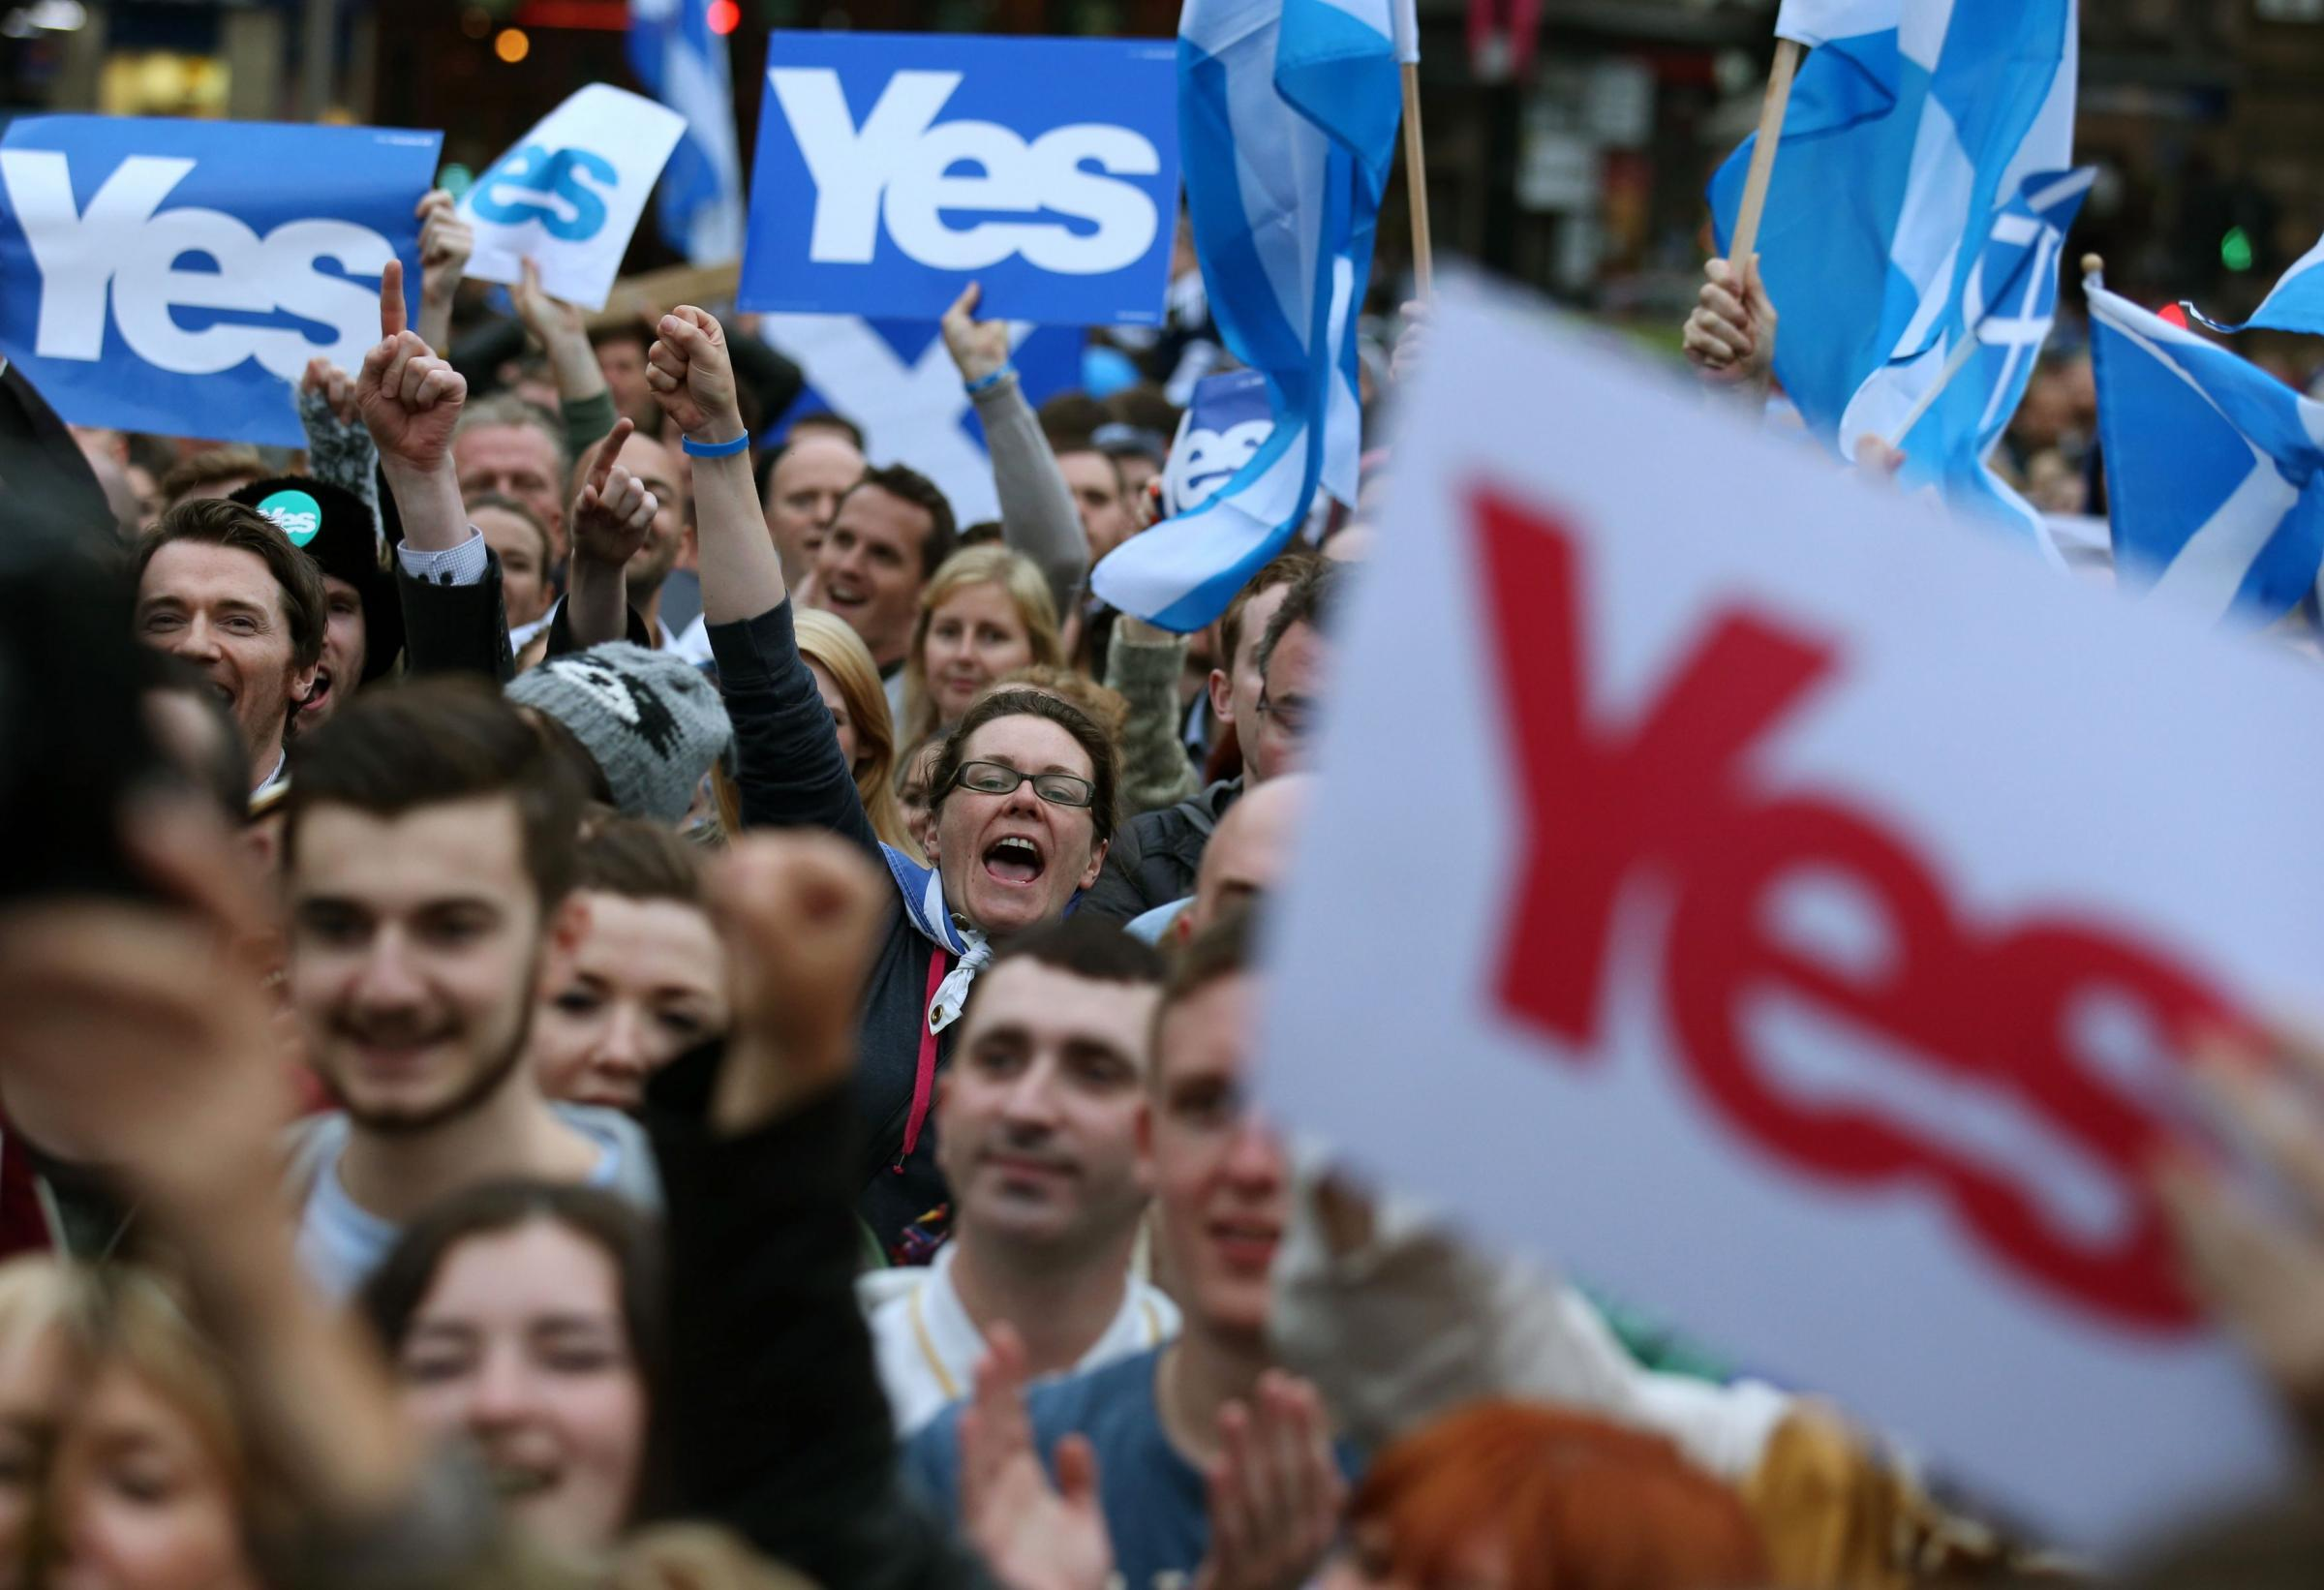 Whose votes should the Yes movement be trying hardest to win?